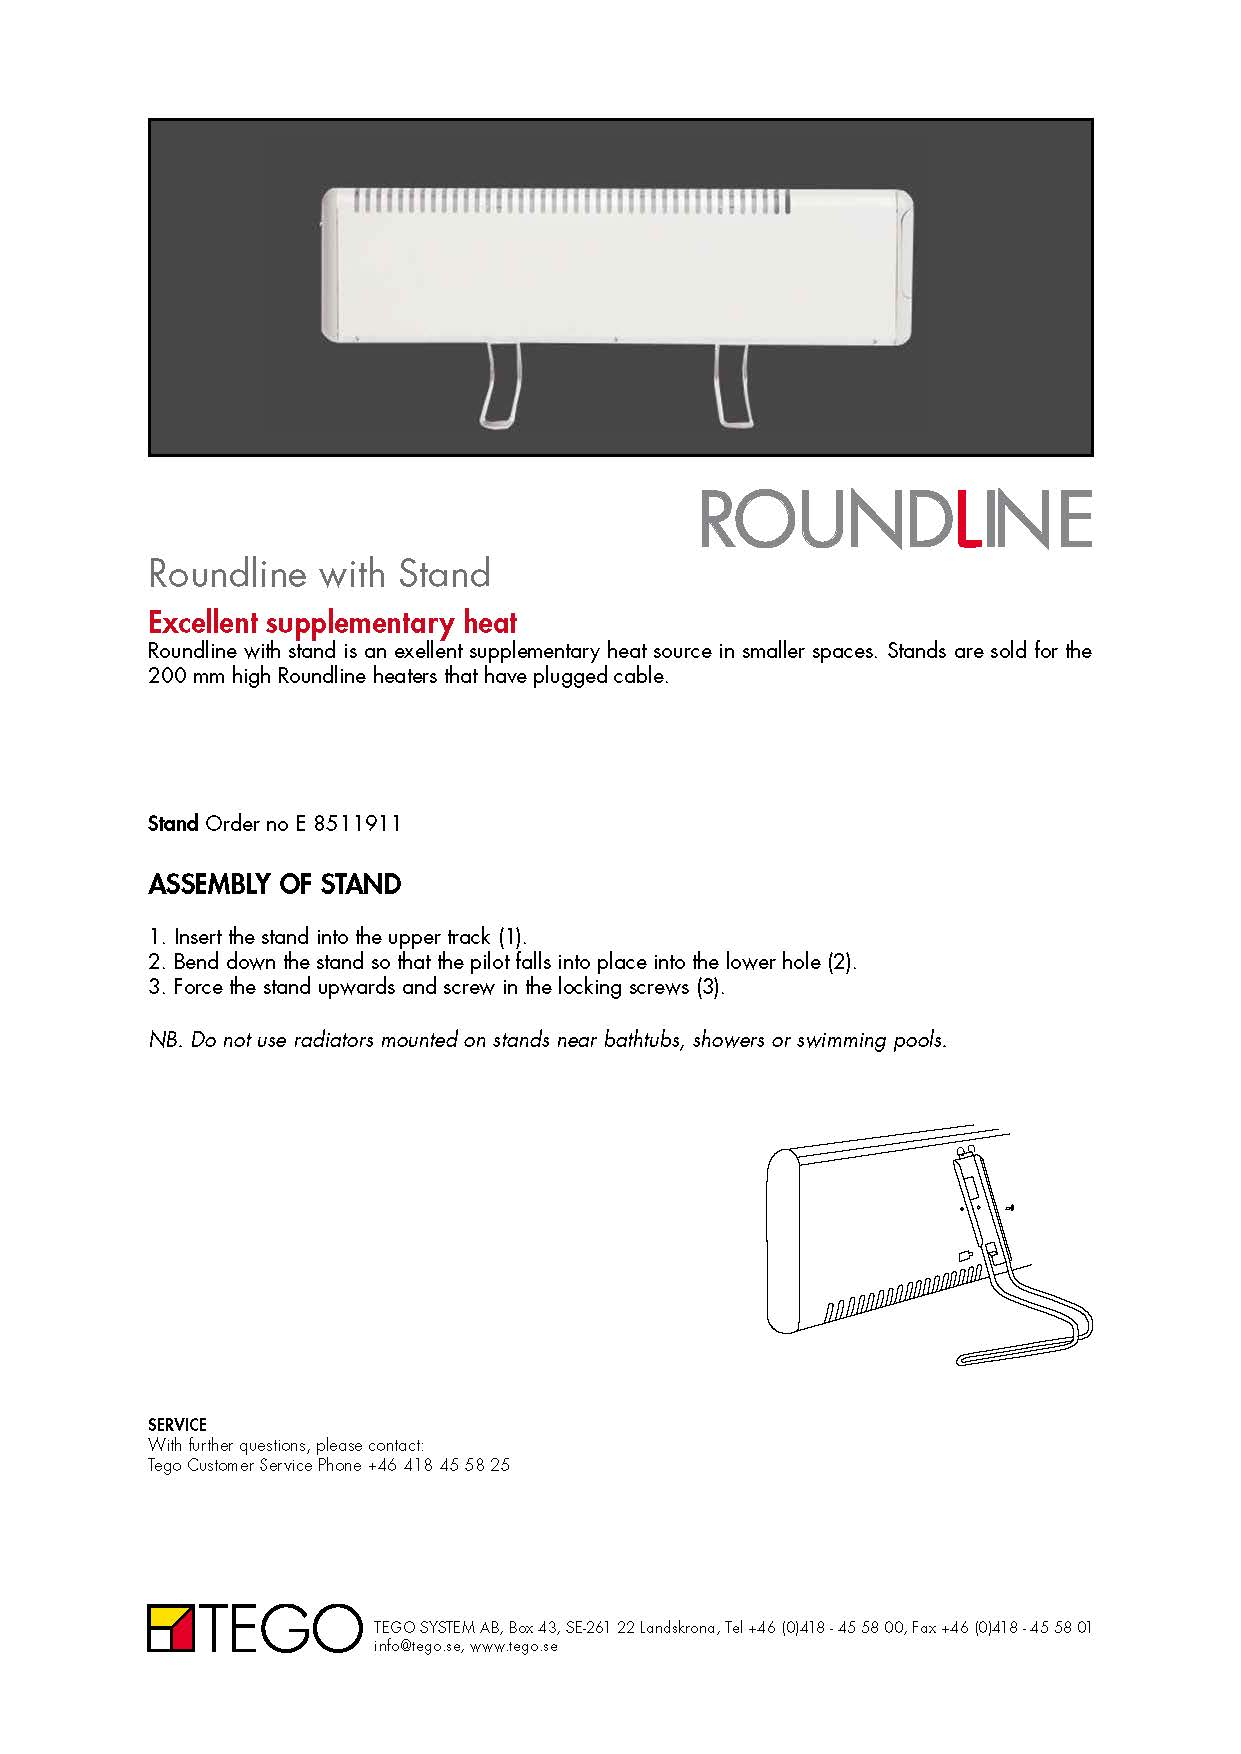 Roundline Manuals Brochures Mm 2 58t Wiring Diagram For Thermostat Slave Radiator